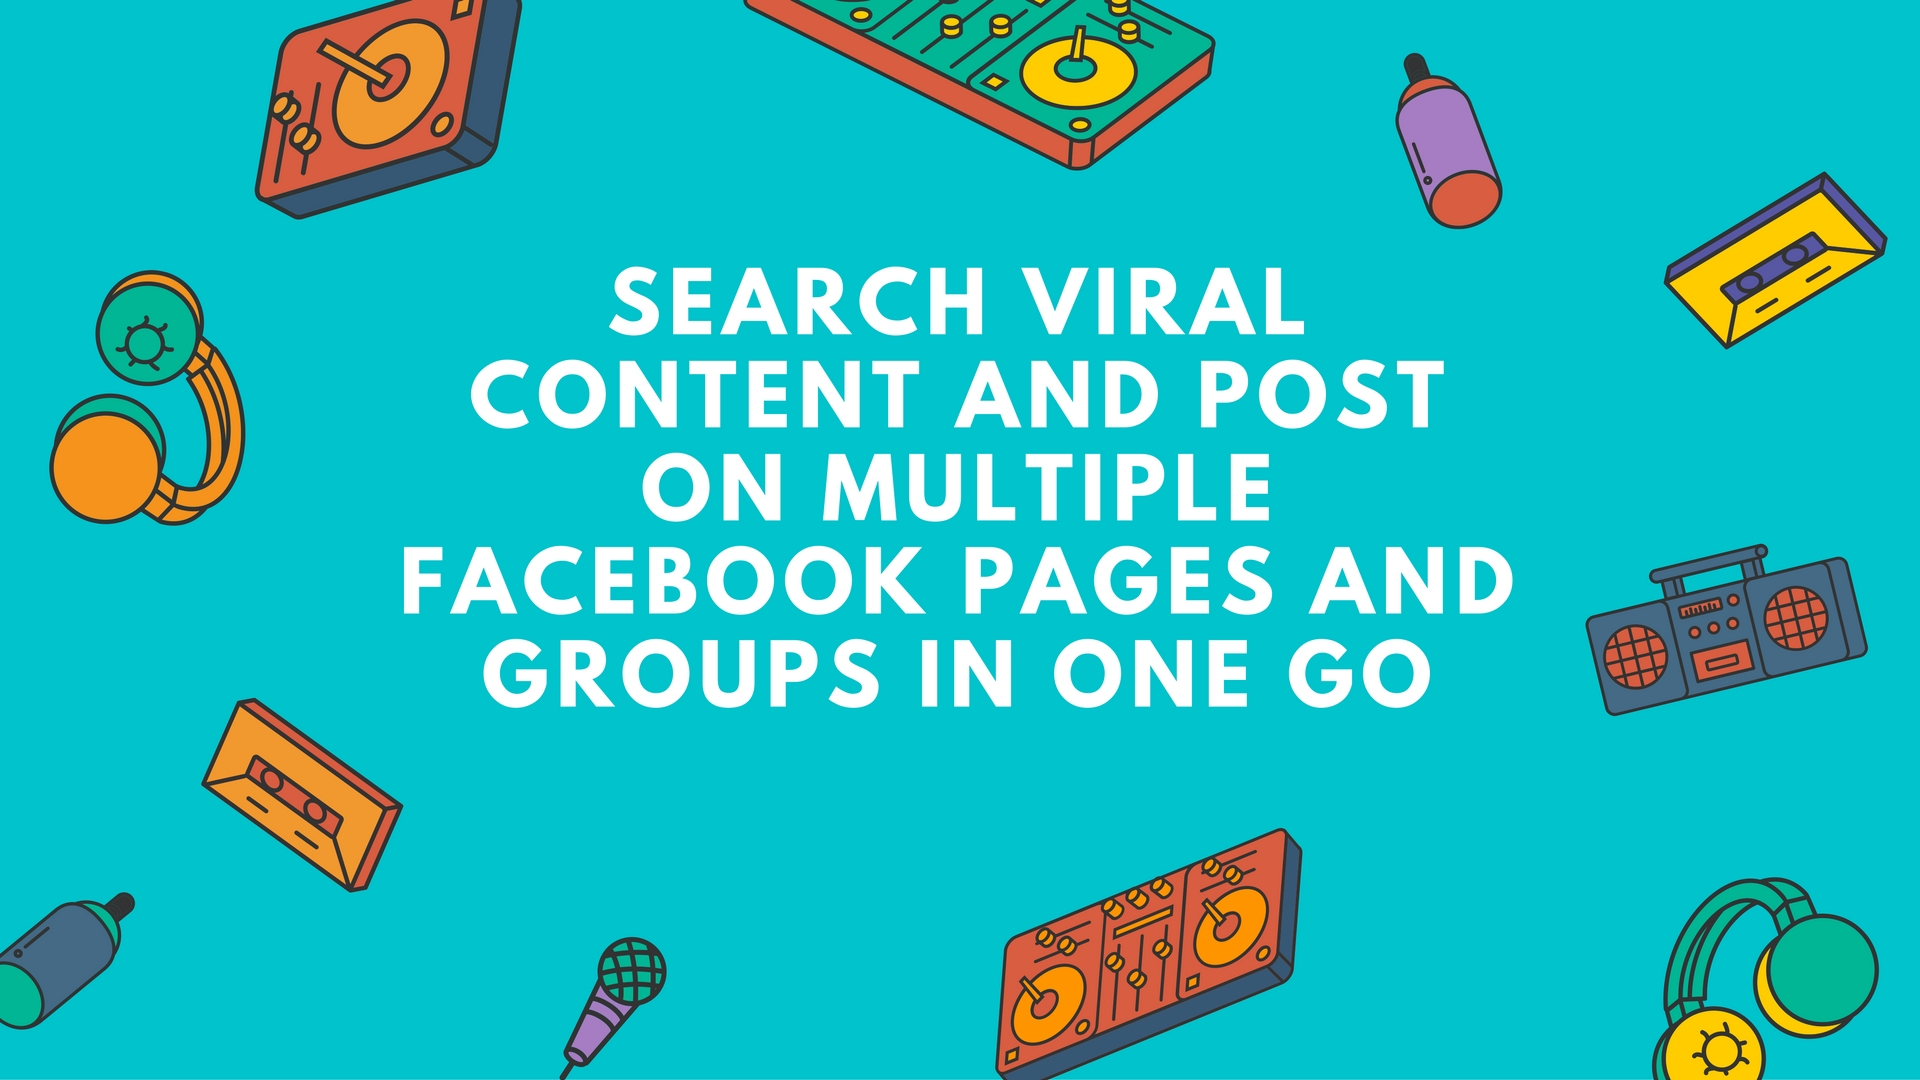 search-viral-content-and-post-on-multiple-facebook-pages-and-groups-in-one-go